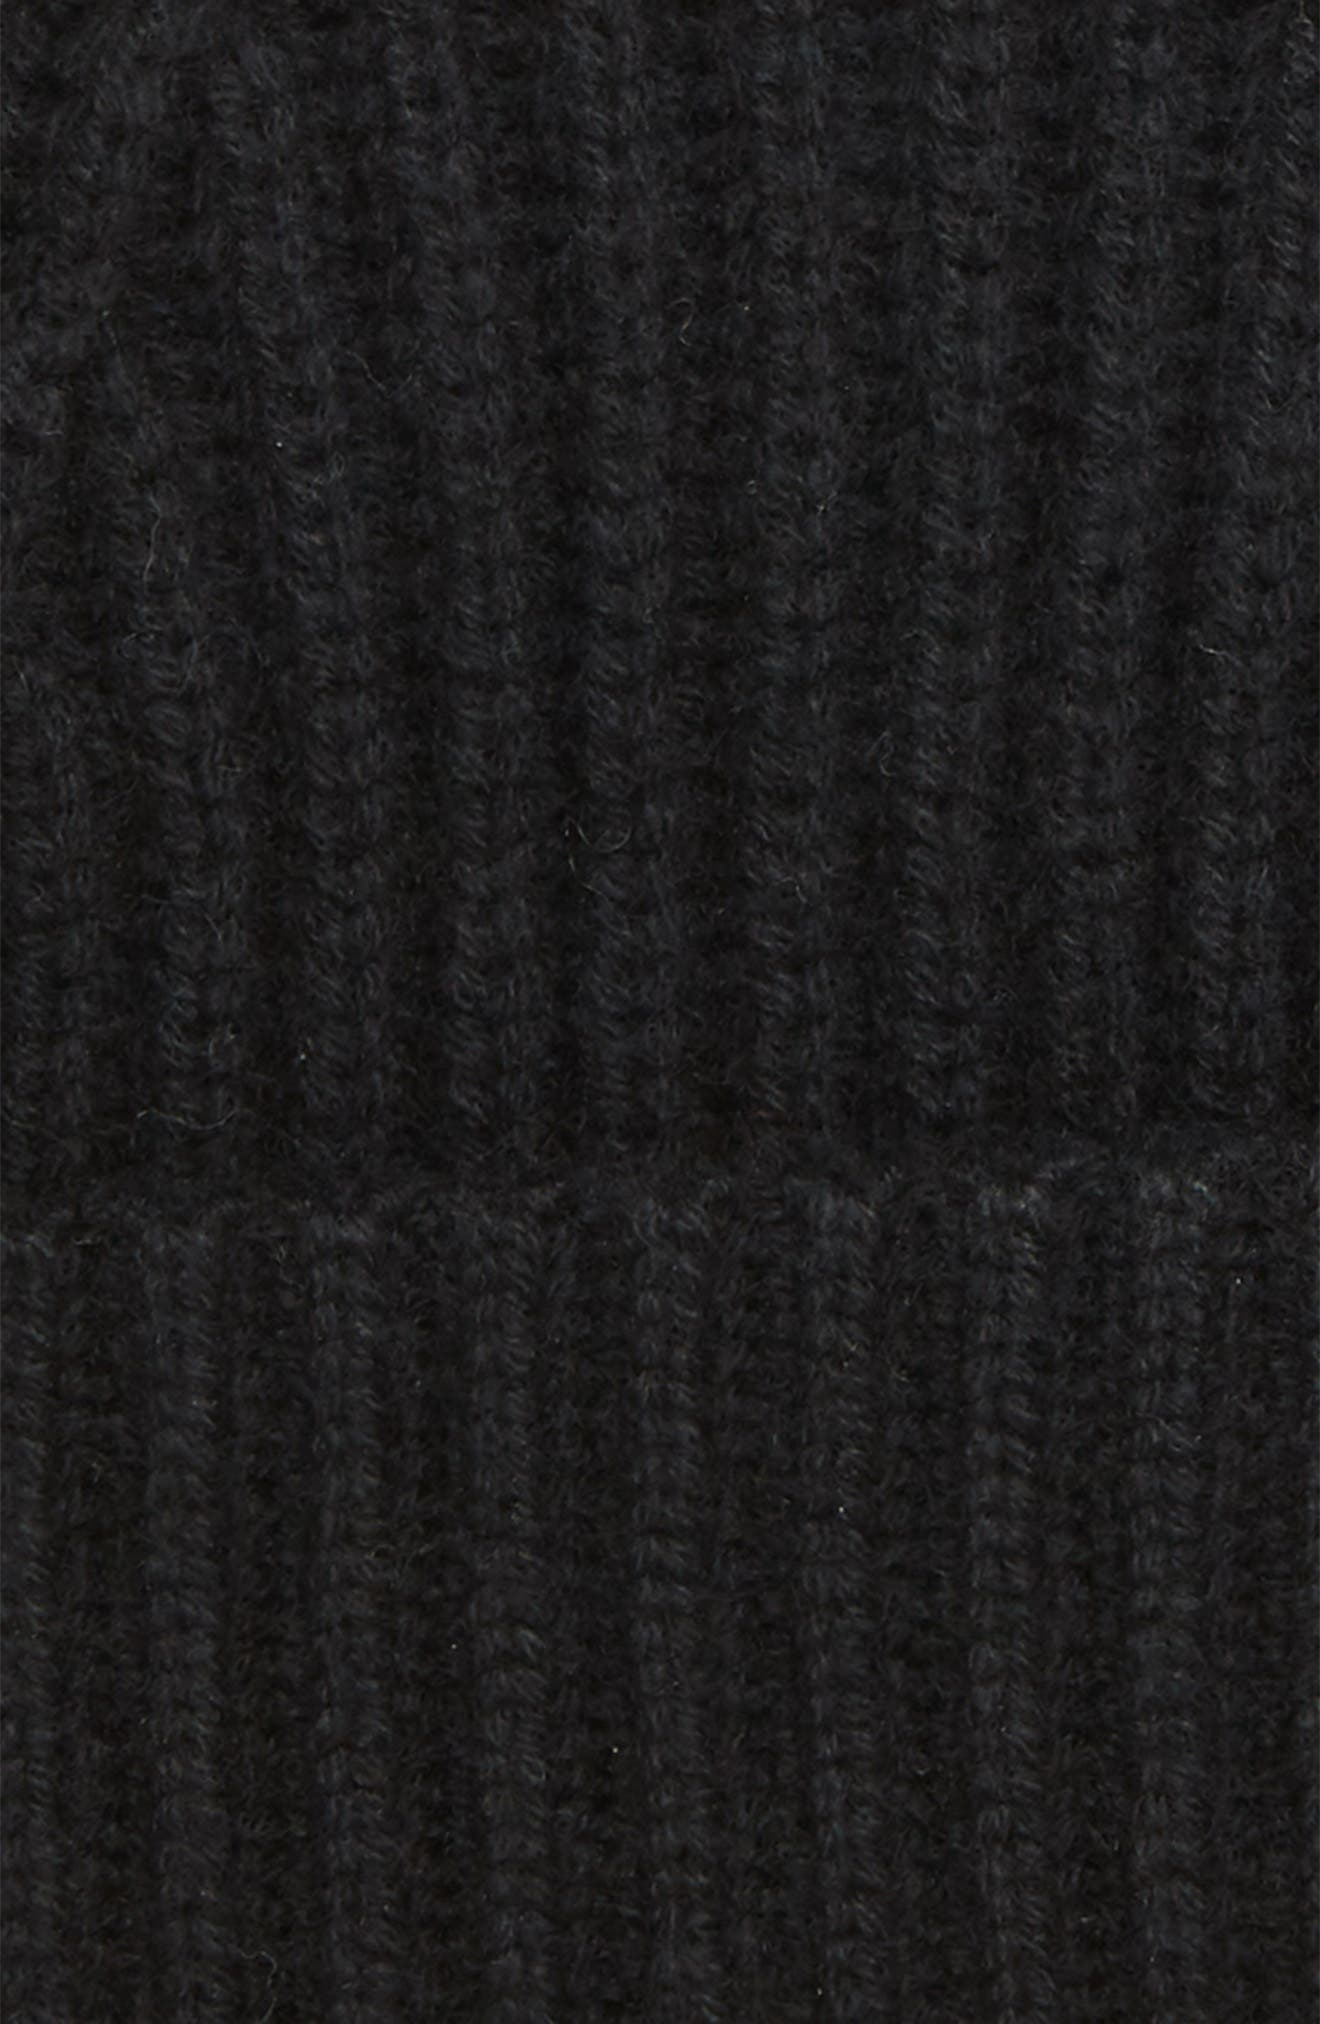 Cashmere Knit Cap,                             Alternate thumbnail 2, color,                             BLACK